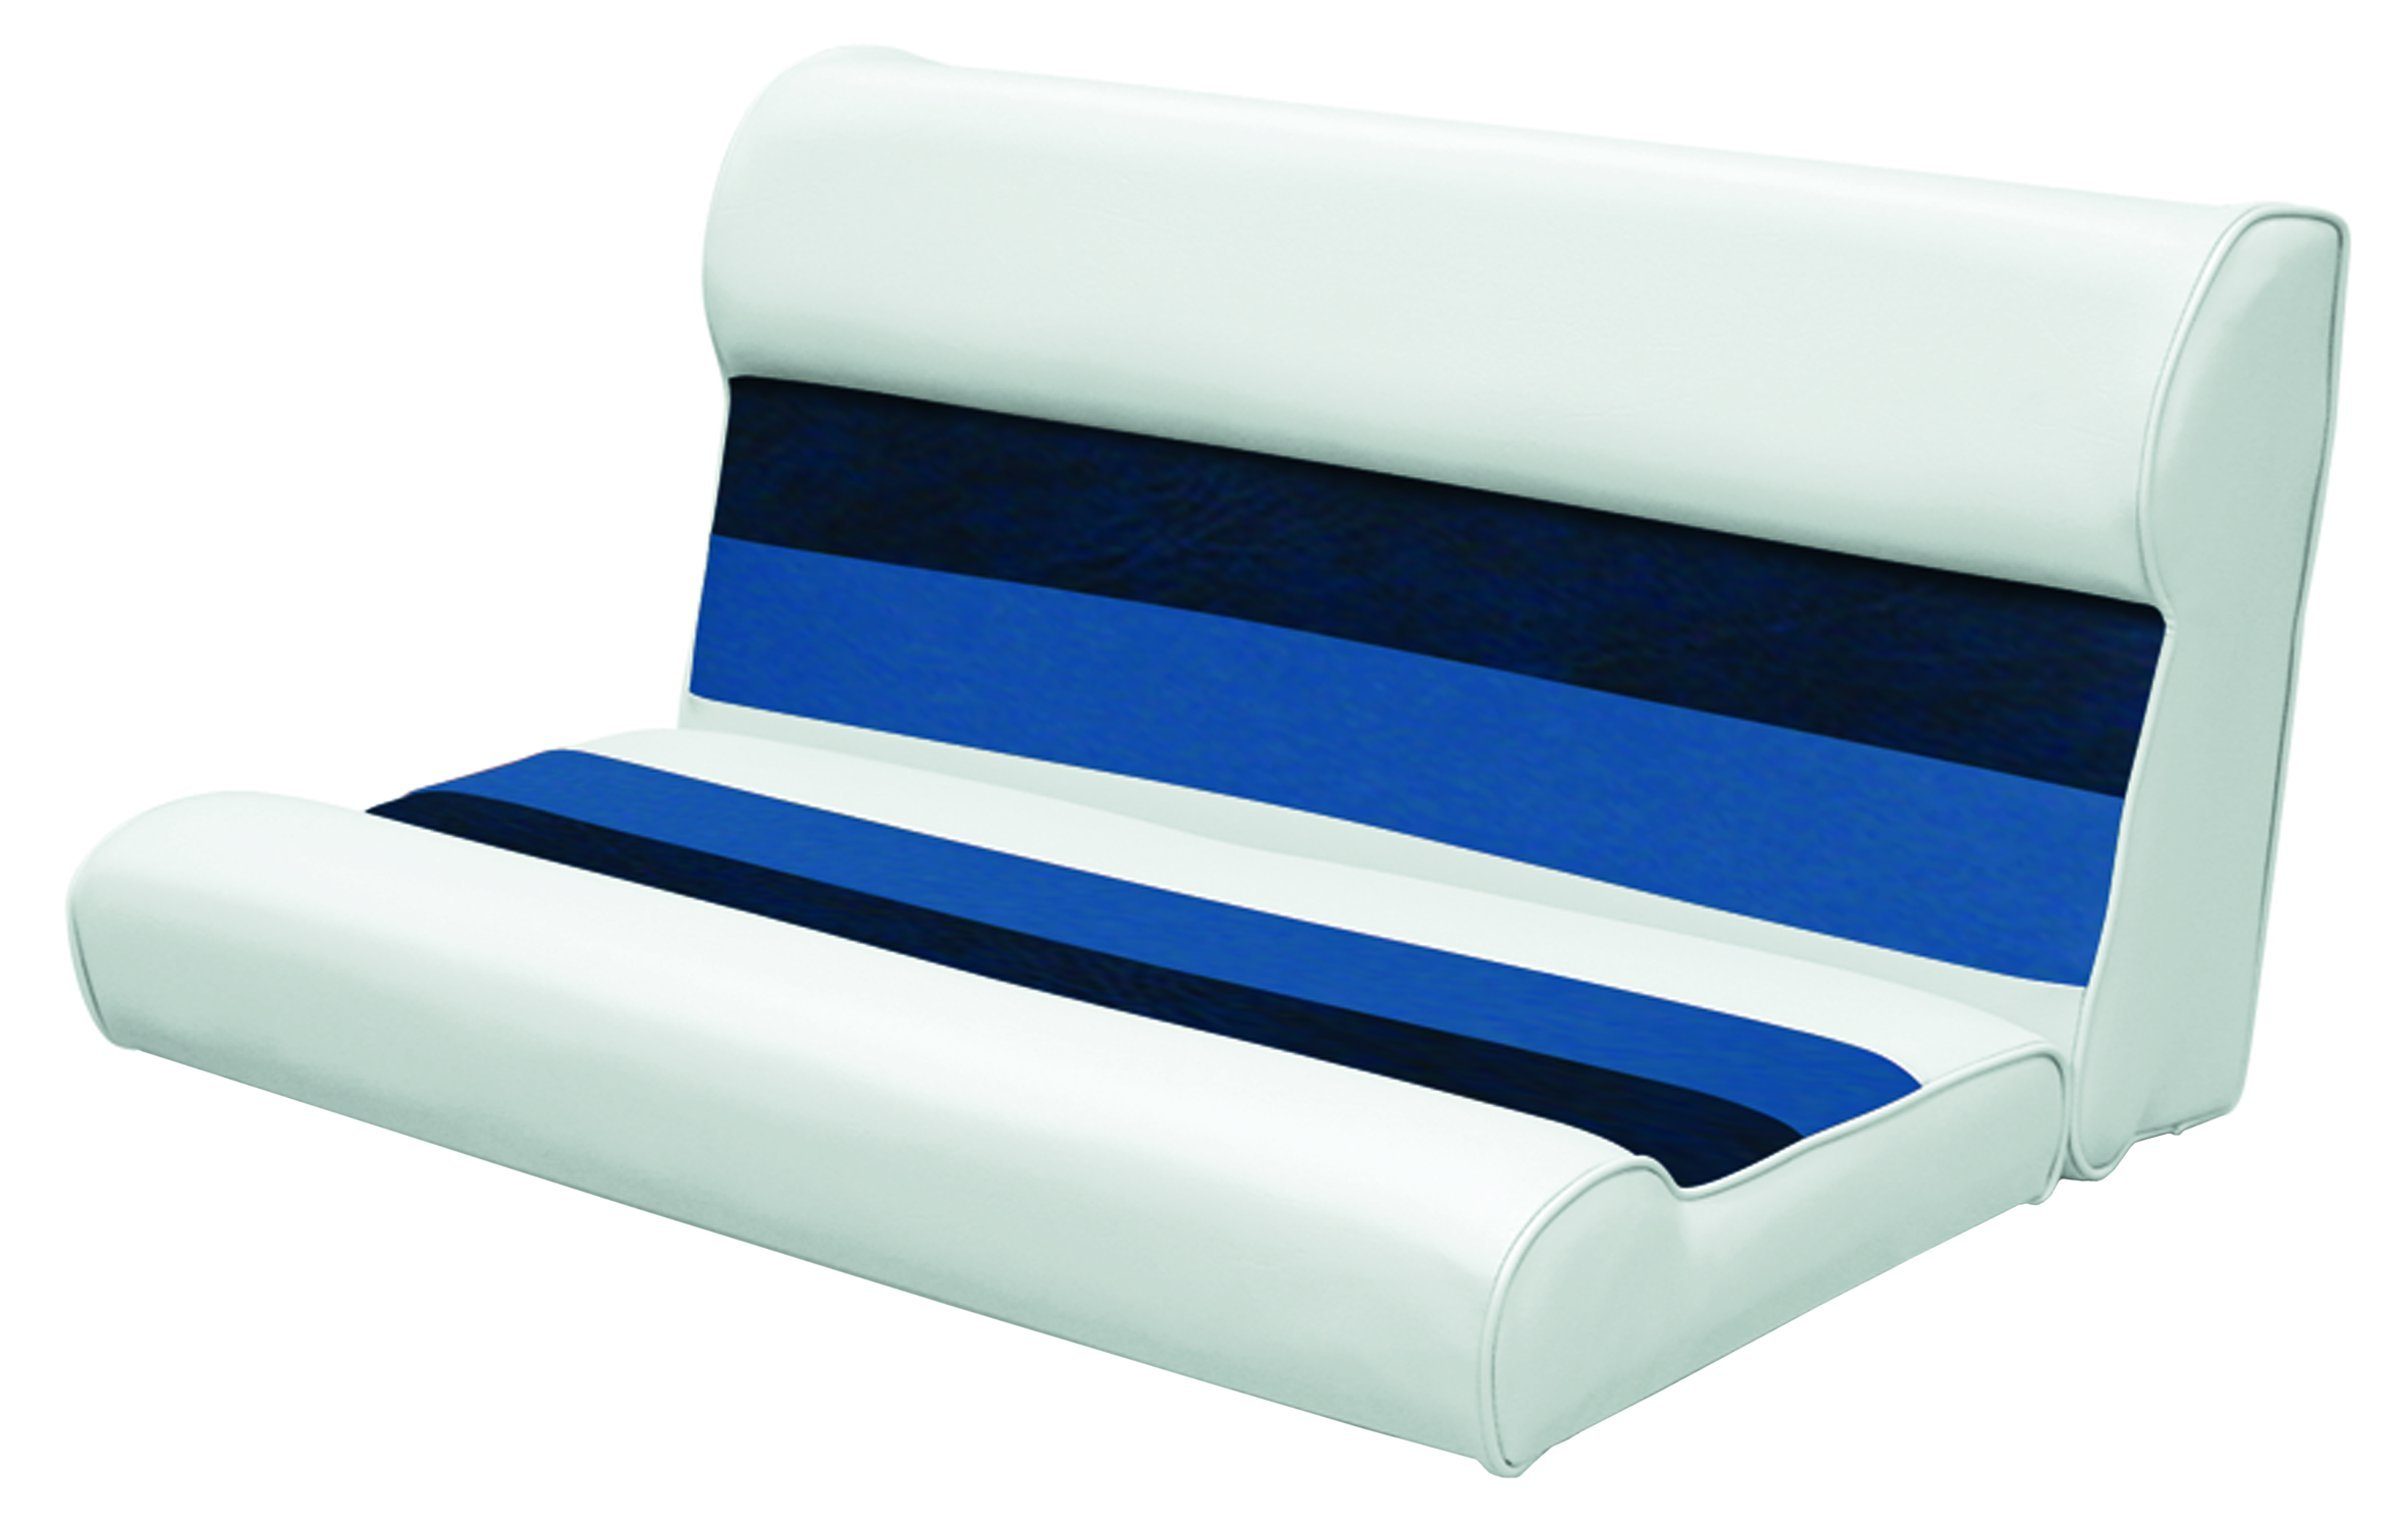 Wise 36-Inch Pontoon Bench Seat Cushion (Base Required to Complete), White-Navy-Blue by Wise